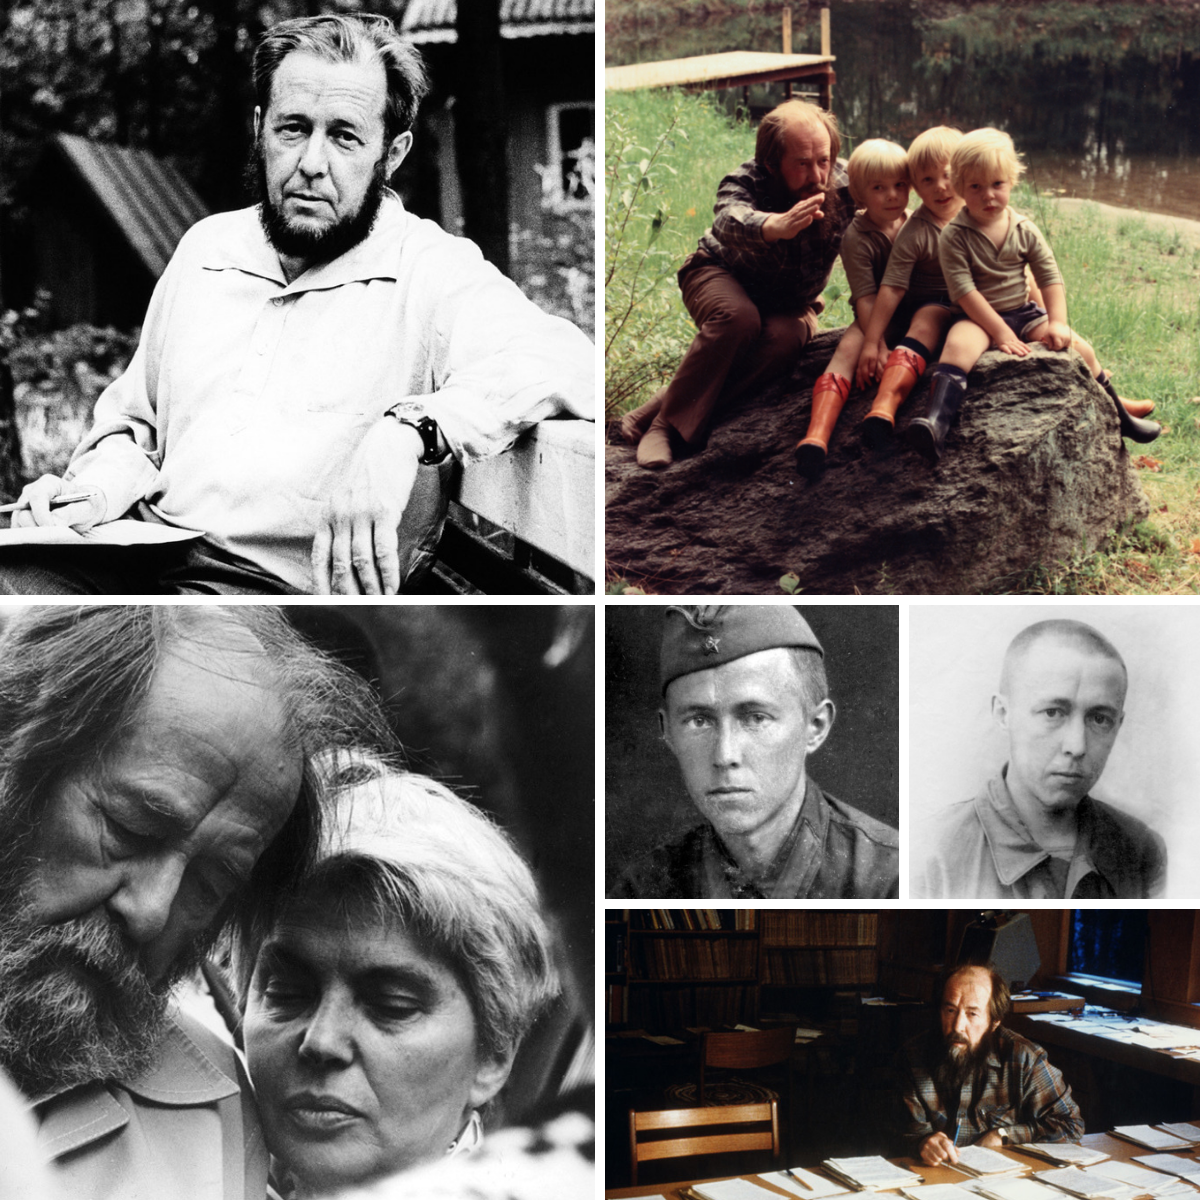 Aleksandr-Solzhenitsyn-Home-Page-Photo.png